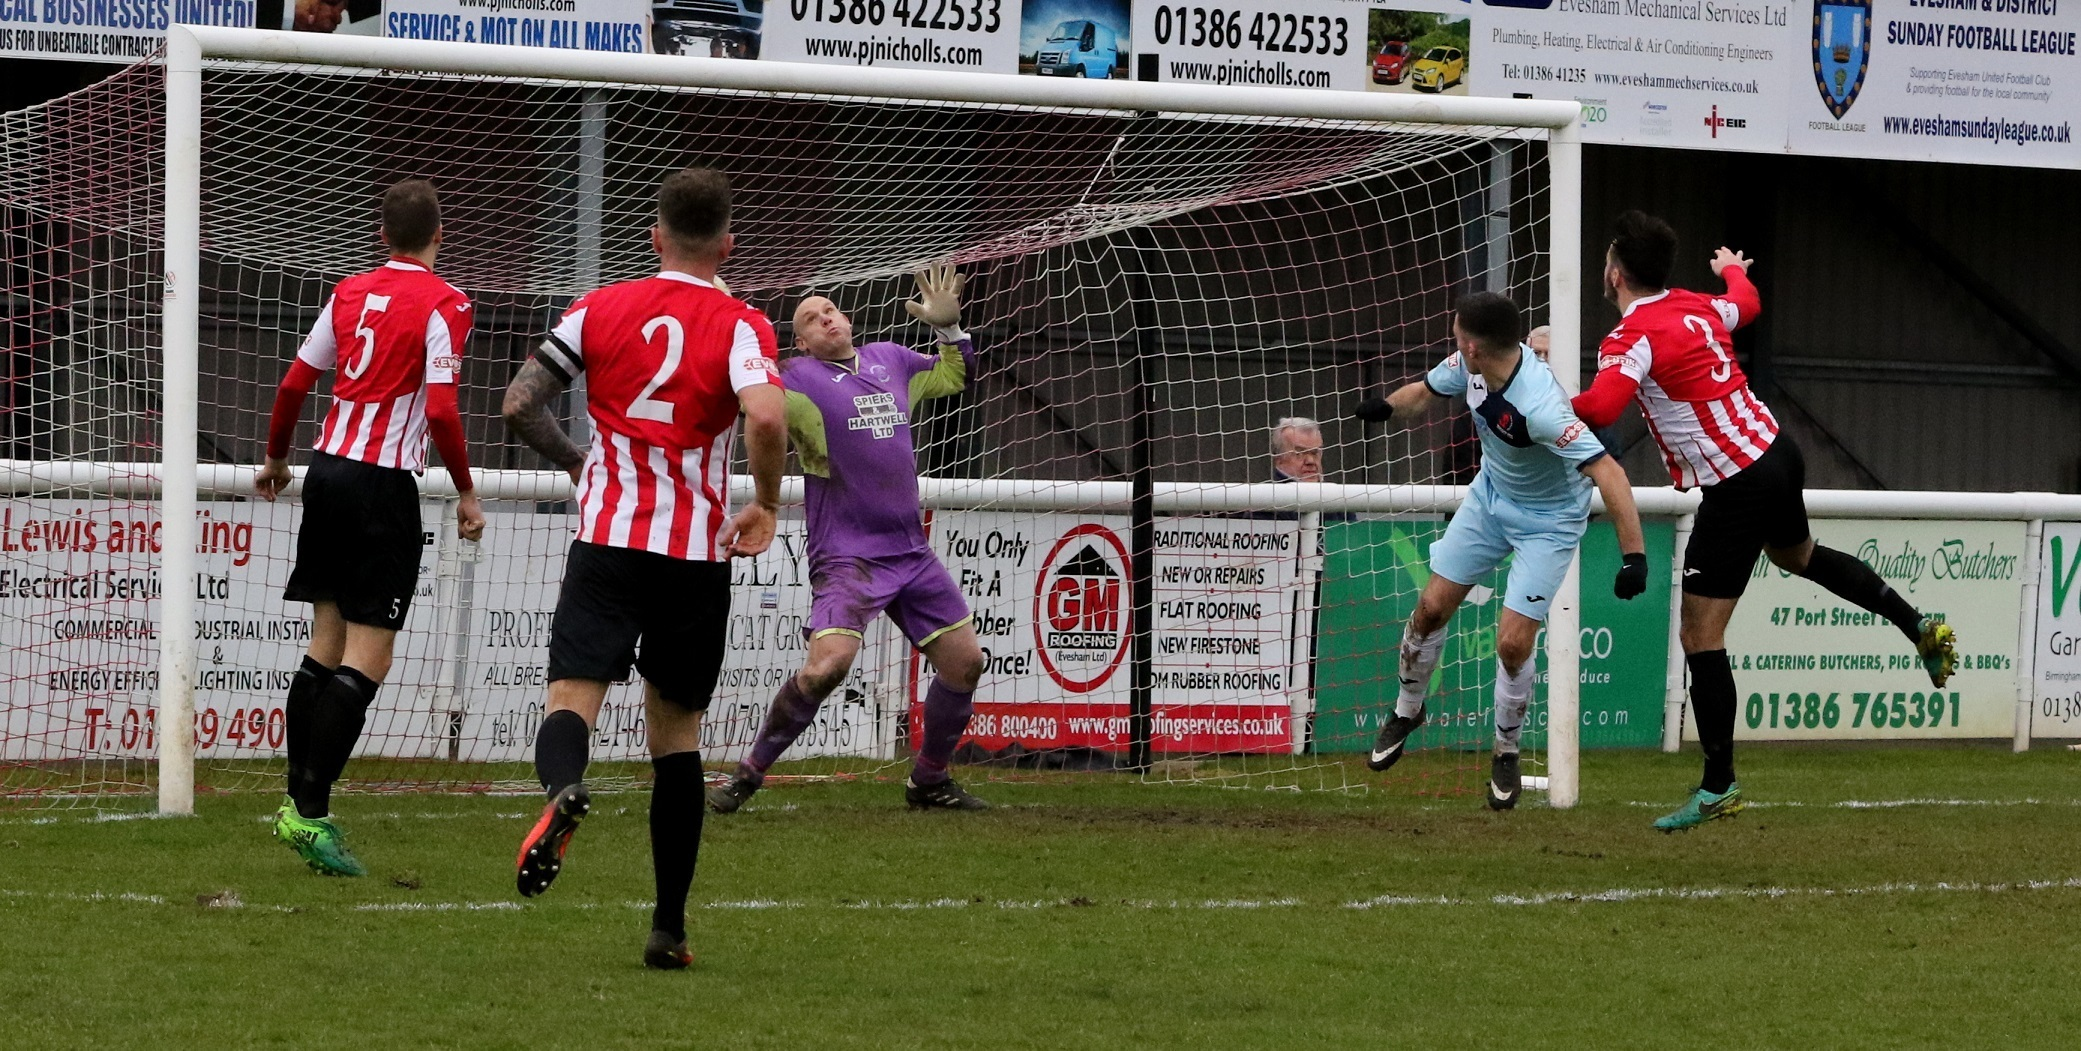 TOUGH DAY: Former Evesham United target Ben Whitehead (9) scored a hat-trick against the Robins on Saturday. (Picture: Steve Rolfe)